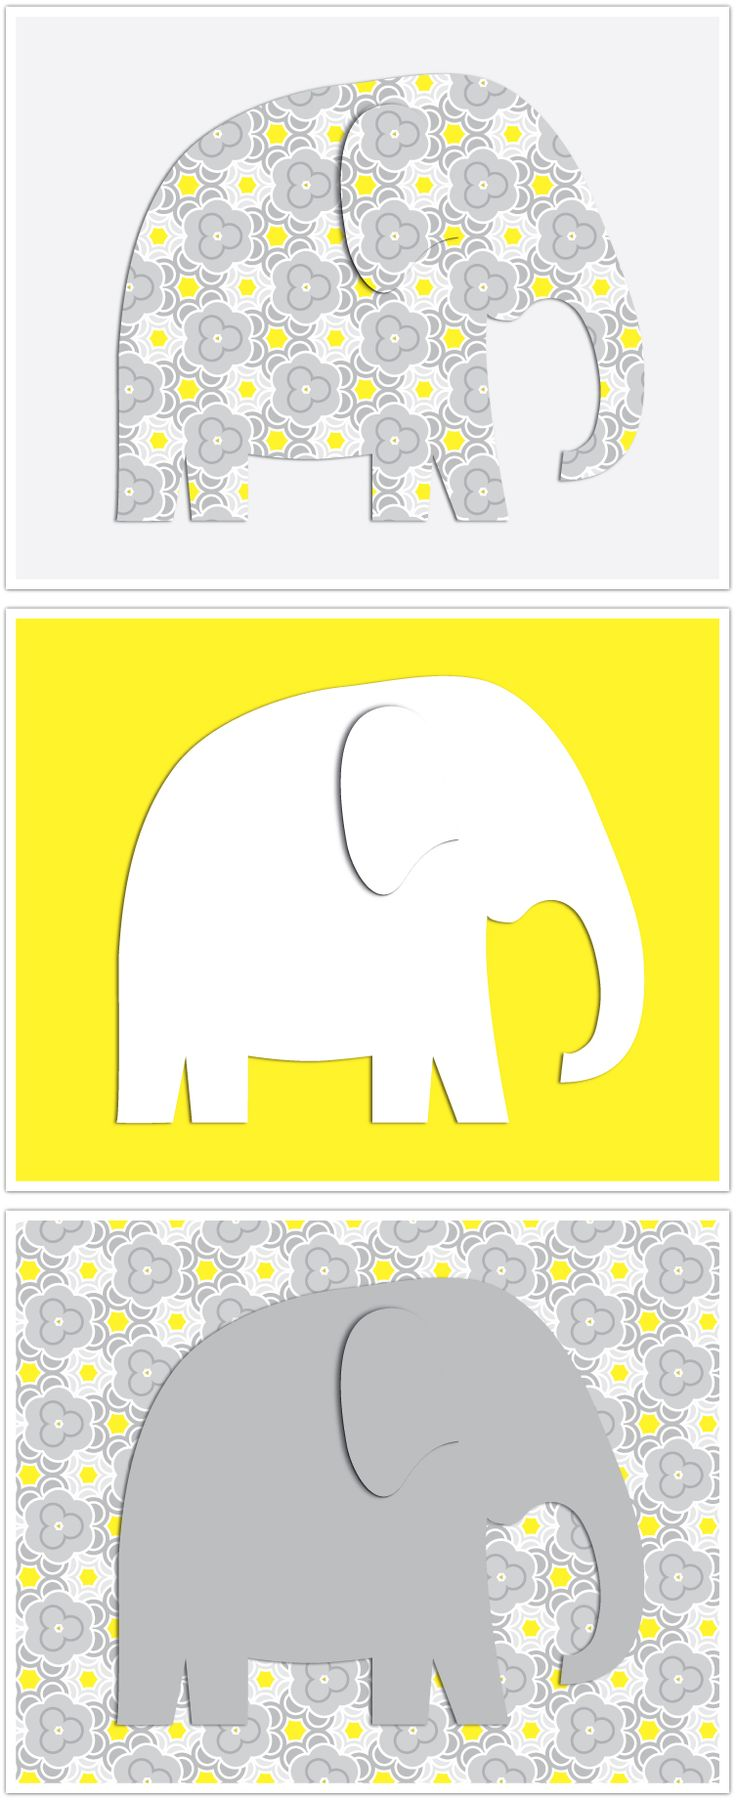 Free Printables--Elephants, Crocs, Giraffes: Idea, Free Printable For Kids Rooms, Elephants Templates, Scrapbook Paper, Diy Wall Decor, Baby Rooms, Elephants Crafts, Animal Templates, Elephants Printable